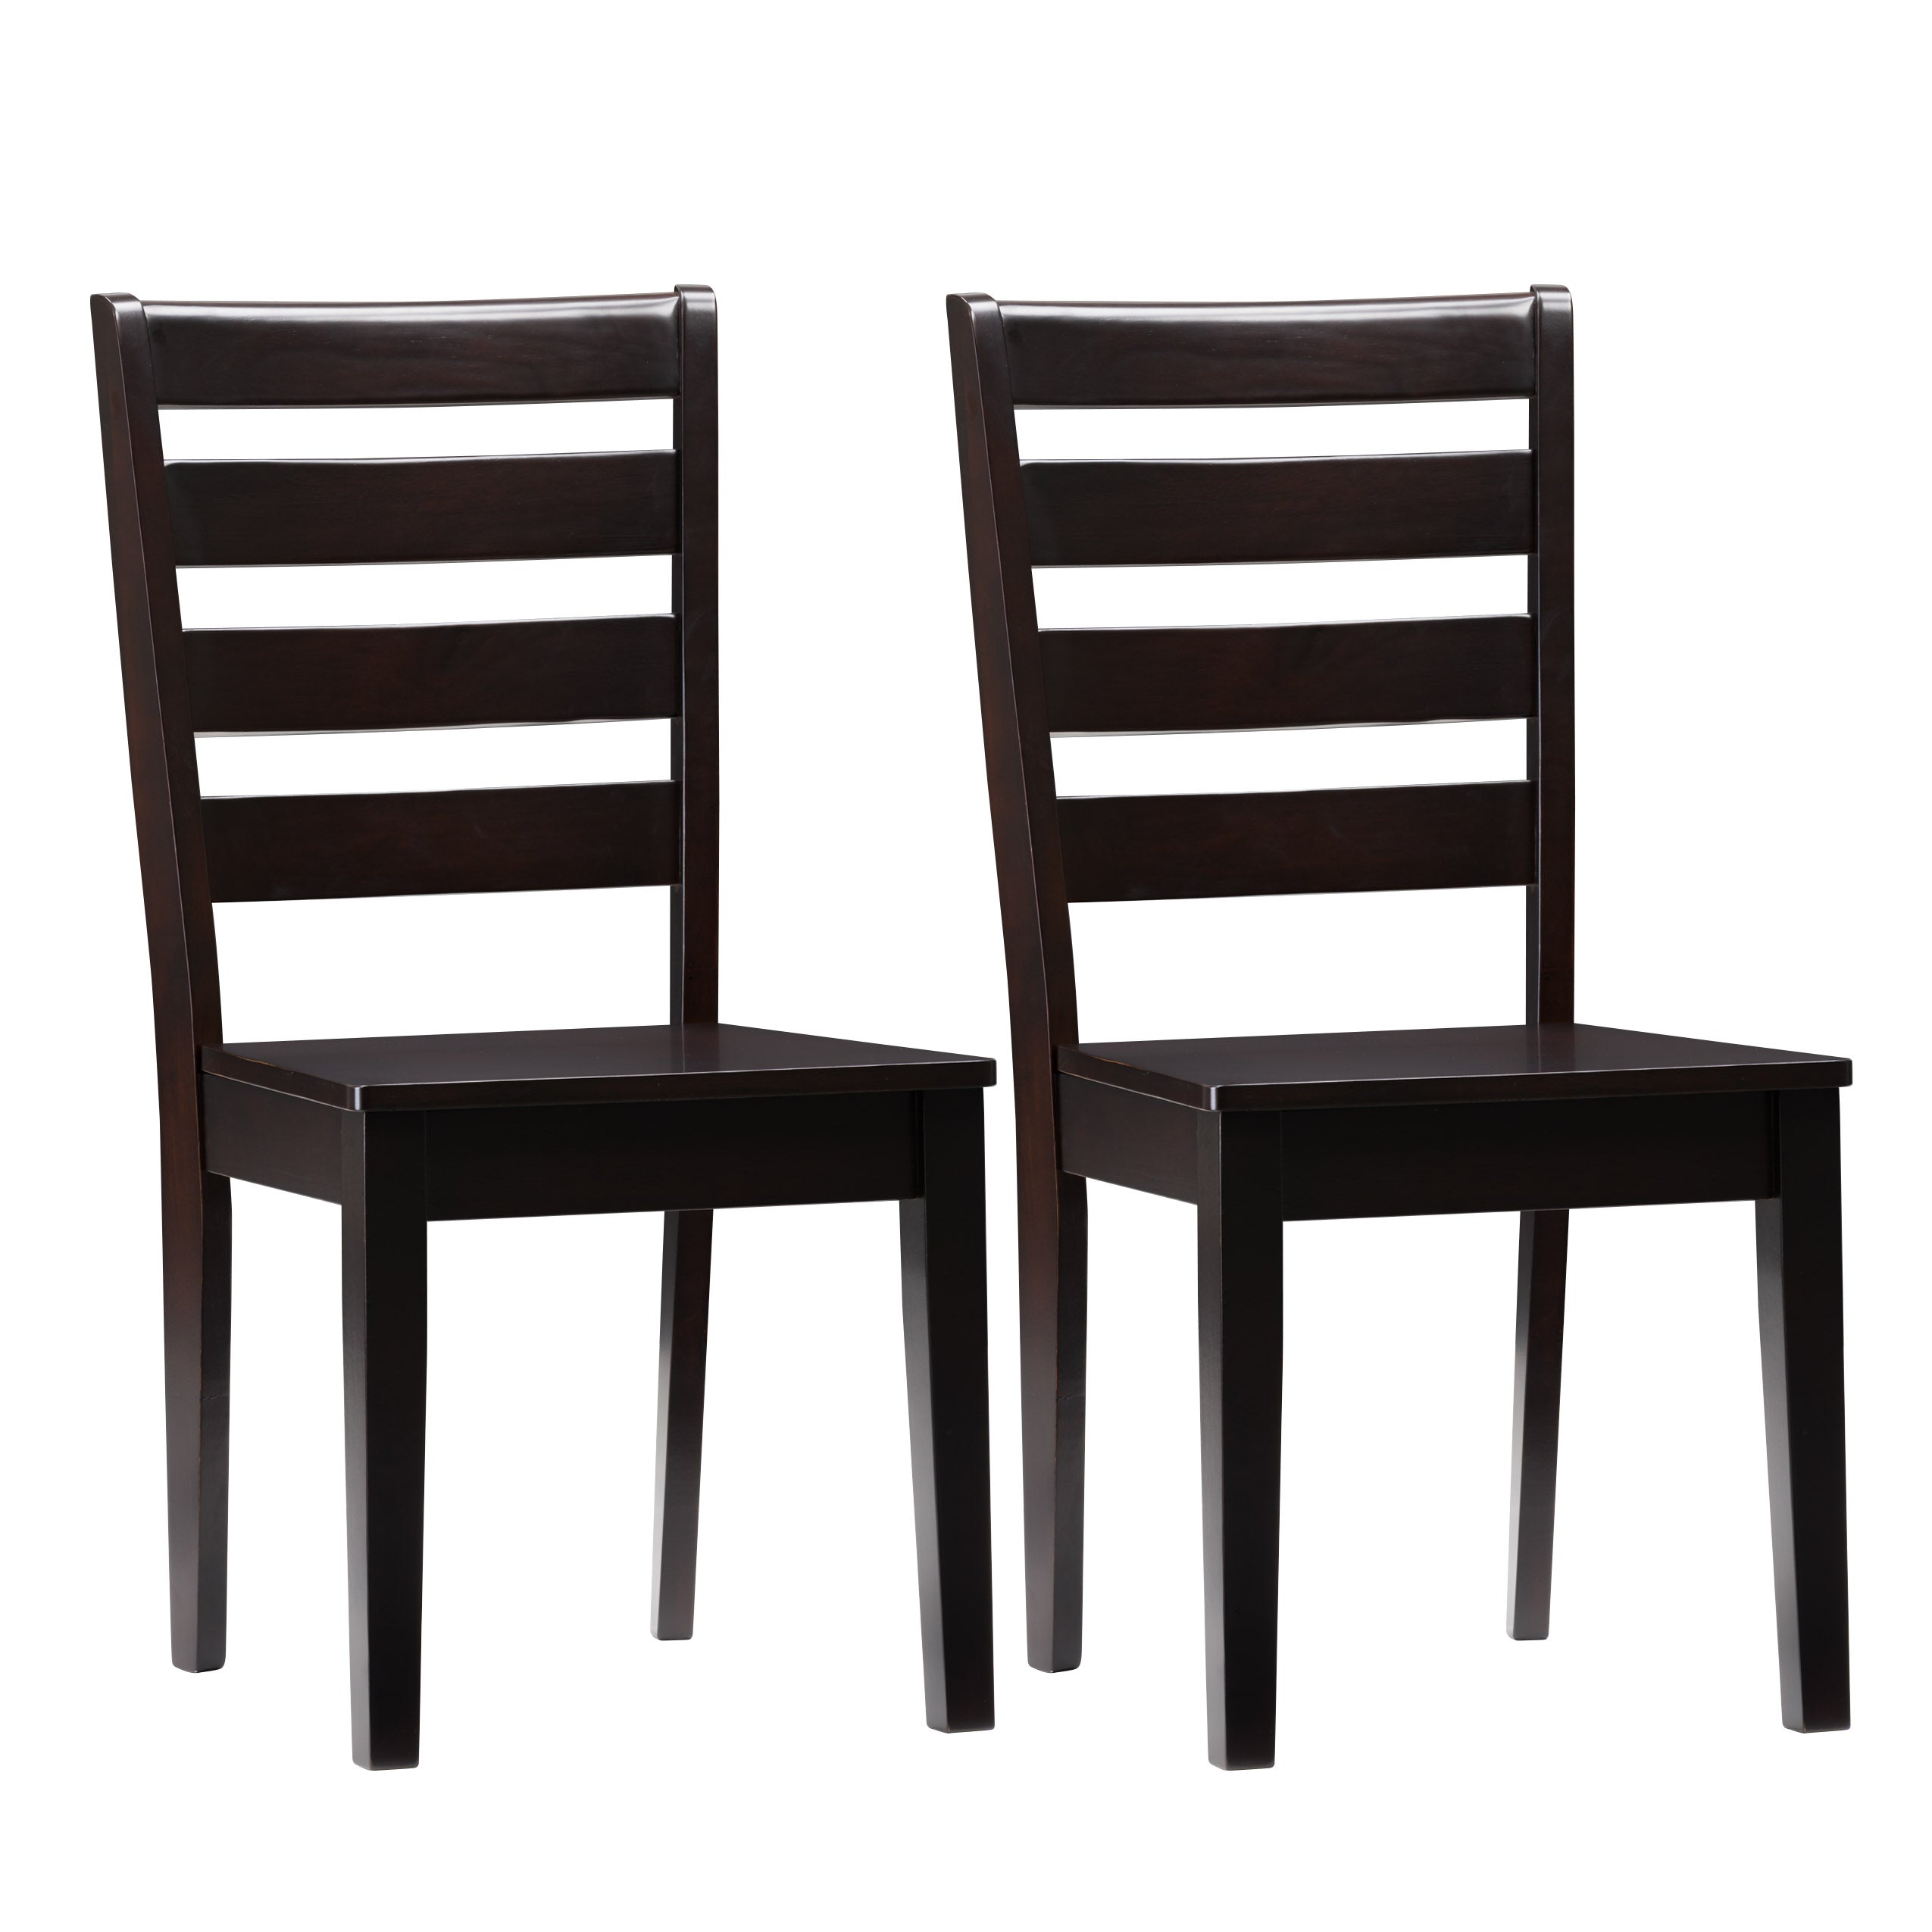 Solid Wood Dining Chairs With Horizontal Slats Set Of 2 Clearance